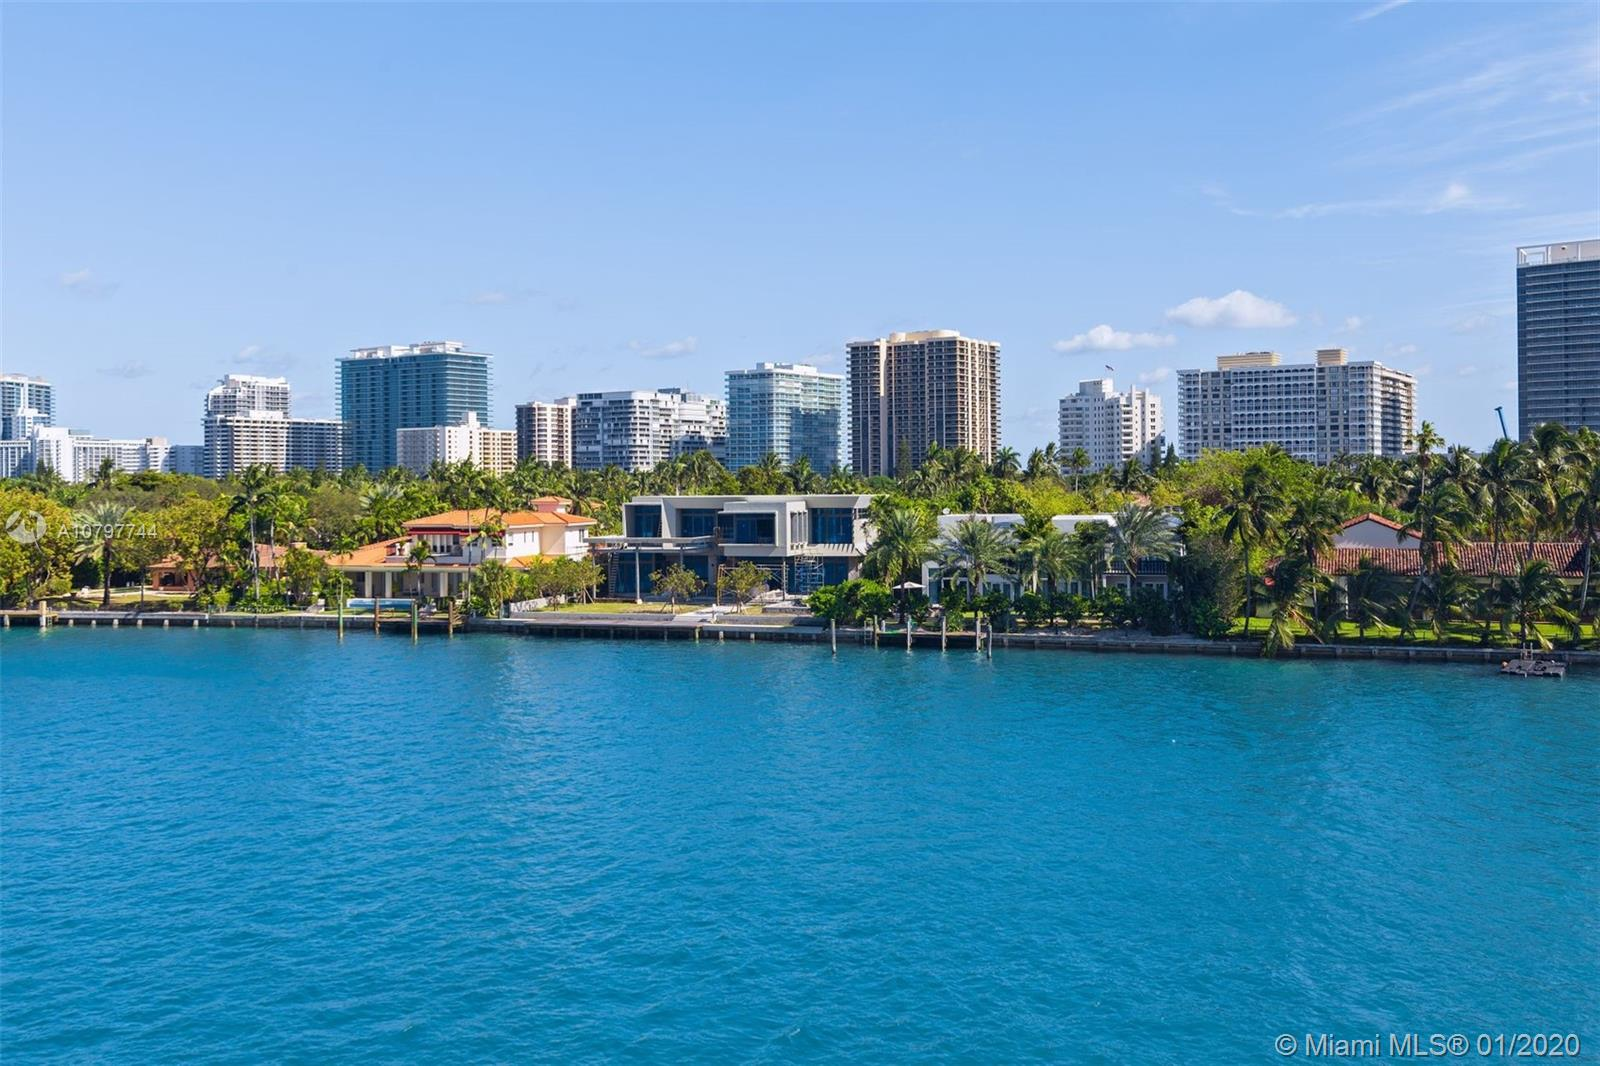 Endless water views!! Amazing 2 bed - 2.5 bath apartment with un-obstructed water views  Huge covered terrace ideal for entertainment or relaxing. Apartment comes furnished w/some exclusions. Open & spacious w/tons of natural light. Marble floors though-out. Kitchen is open to living/dining & amazing water views. Exclusive private full-service boutique Mediterranean bldg w/only 39 units. Amenities include: concierge, valet, pool, gym, East & West facing sundecks & potential to rent a boat slip. 2 side-by side car parking spaces + separate storage.  Walt to the beach, Bal Harbour Shops, restaurants.  Amazing school district too.